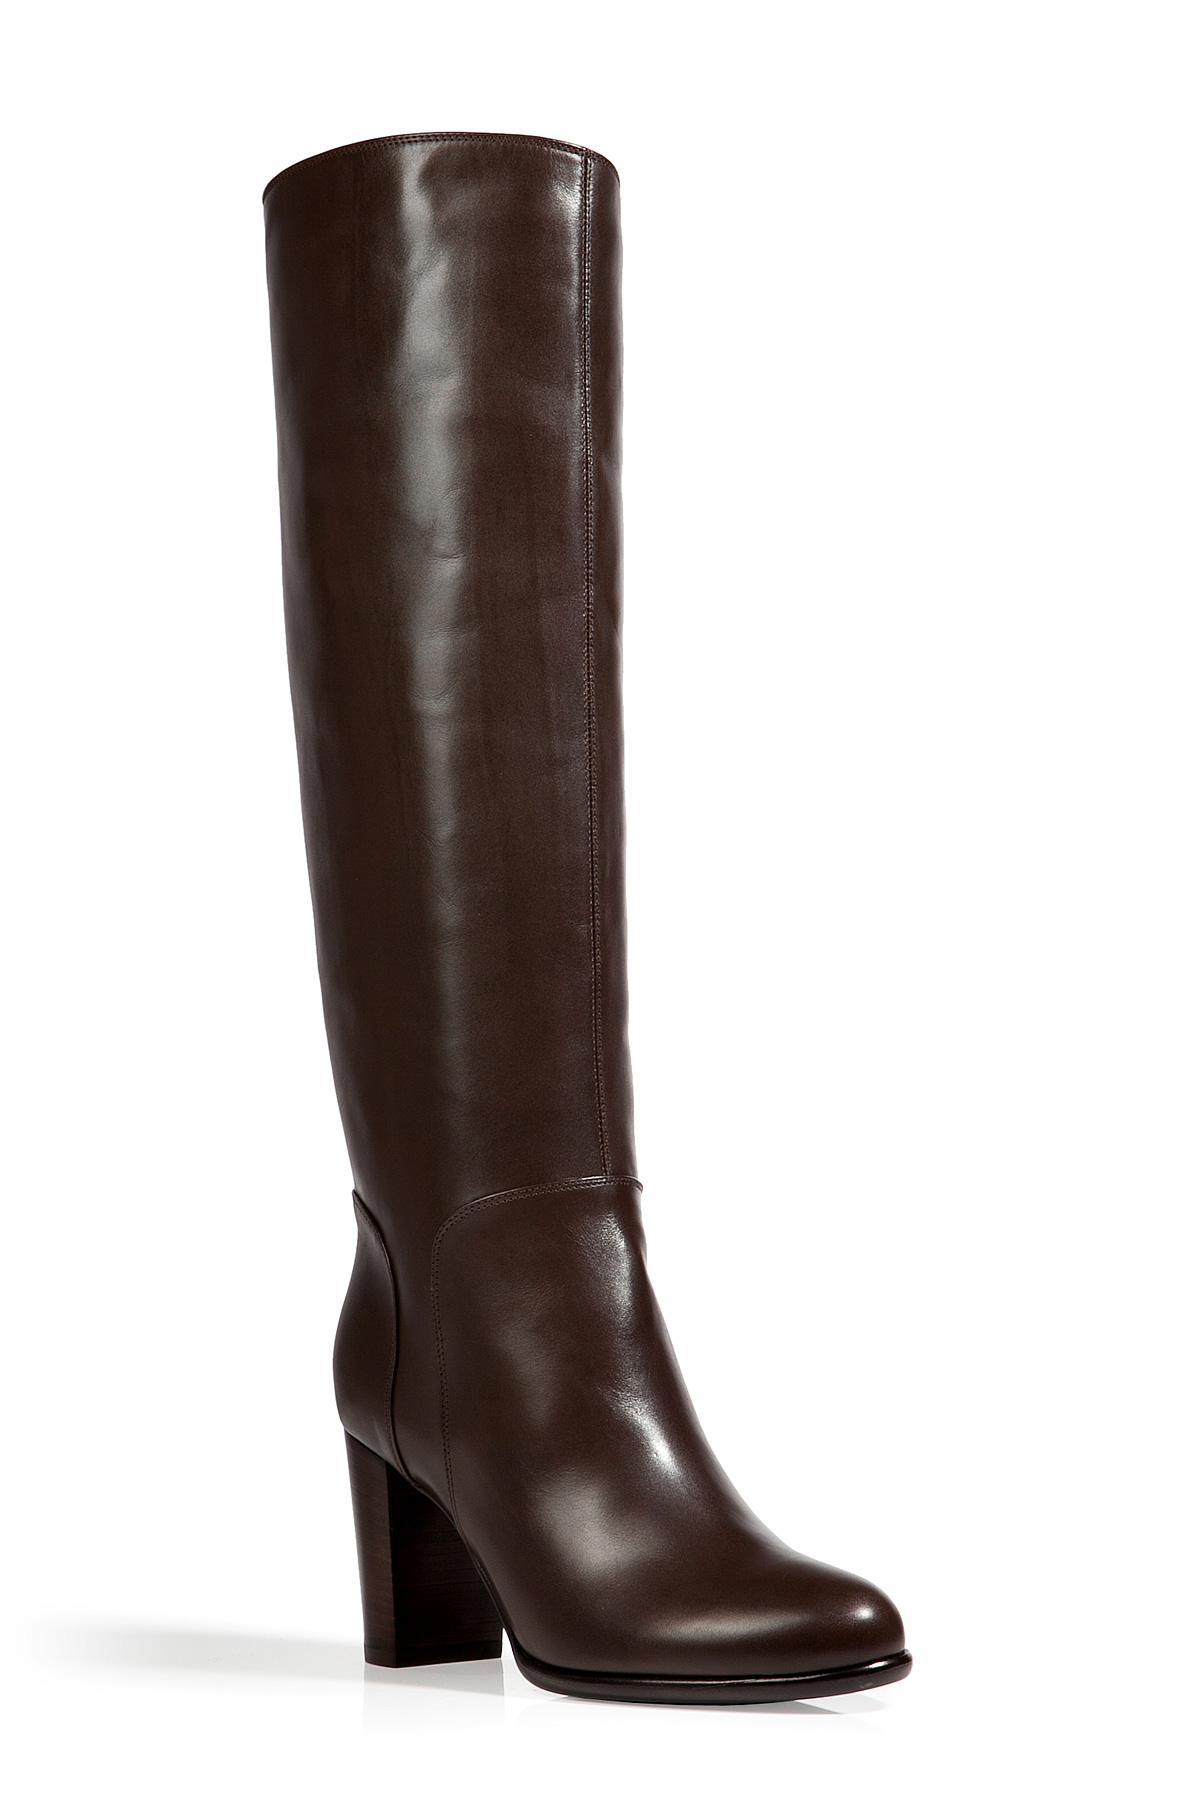 Sergio Rossi Leather Tall Boots In Ebony In Brown Ebony